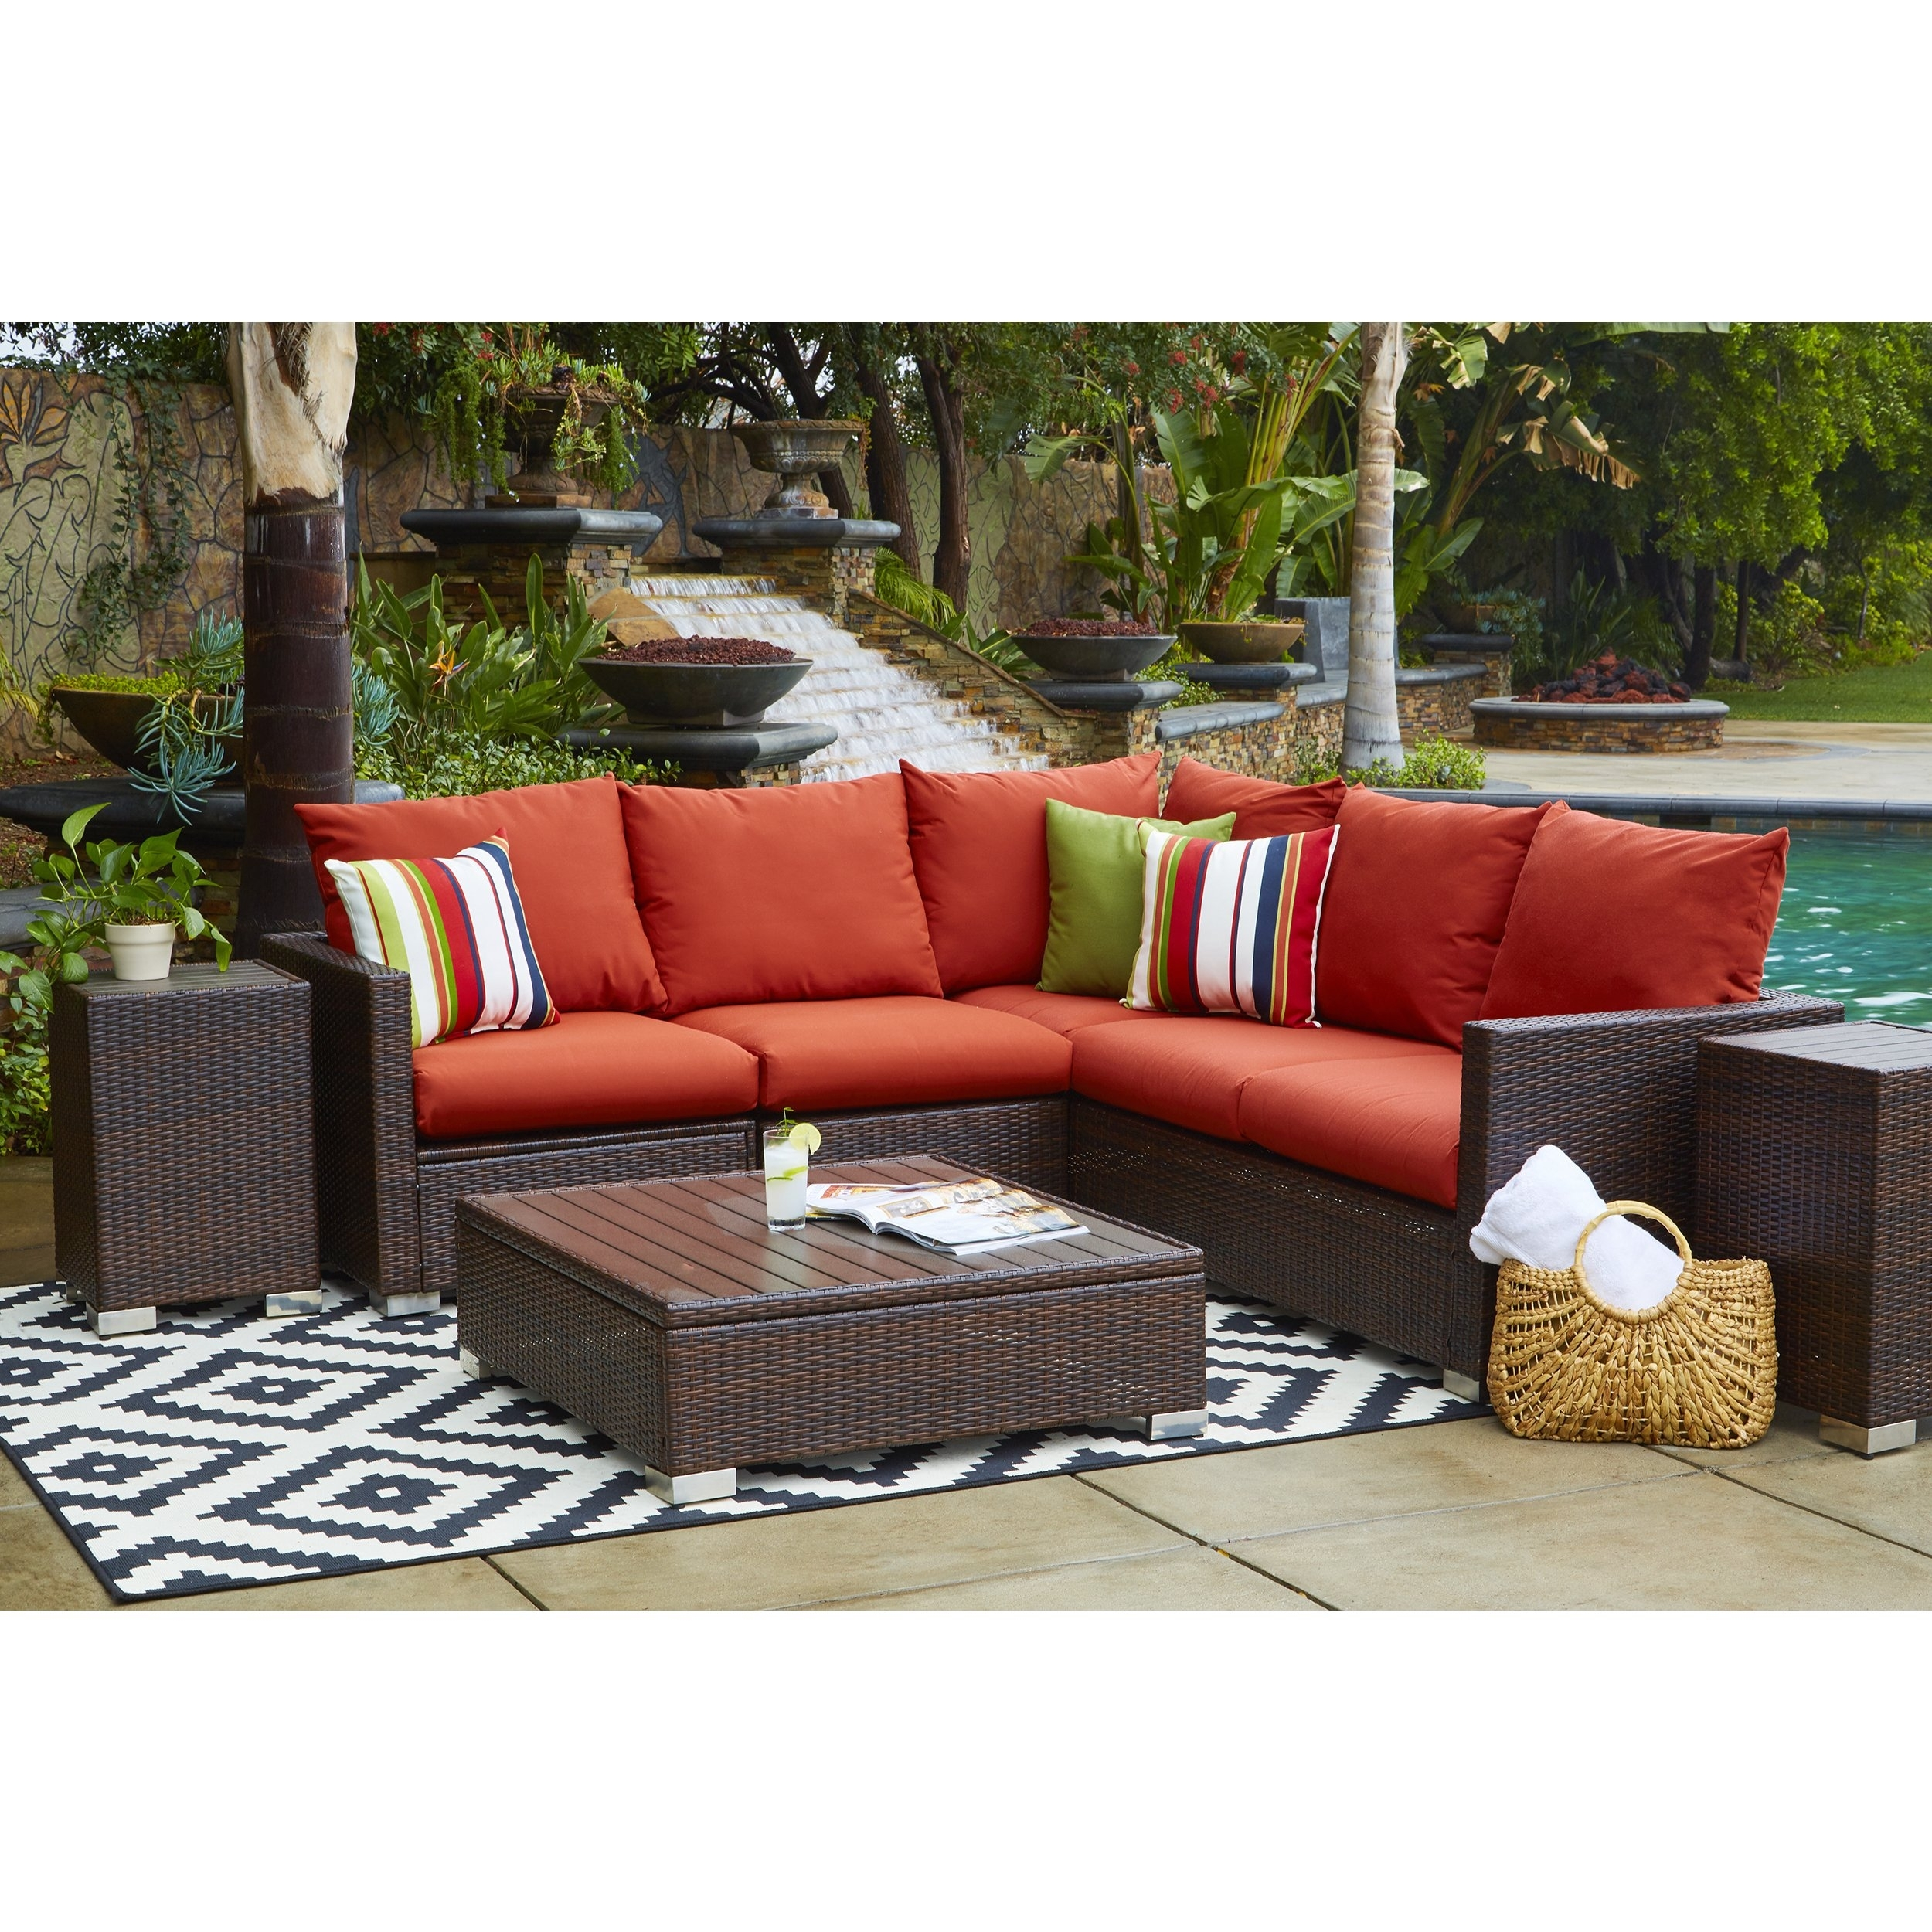 Shop Portfolio Aldrich Indoor/outdoor 3 Piece Sectional Set With in Karen 3 Piece Sectionals (Image 24 of 30)